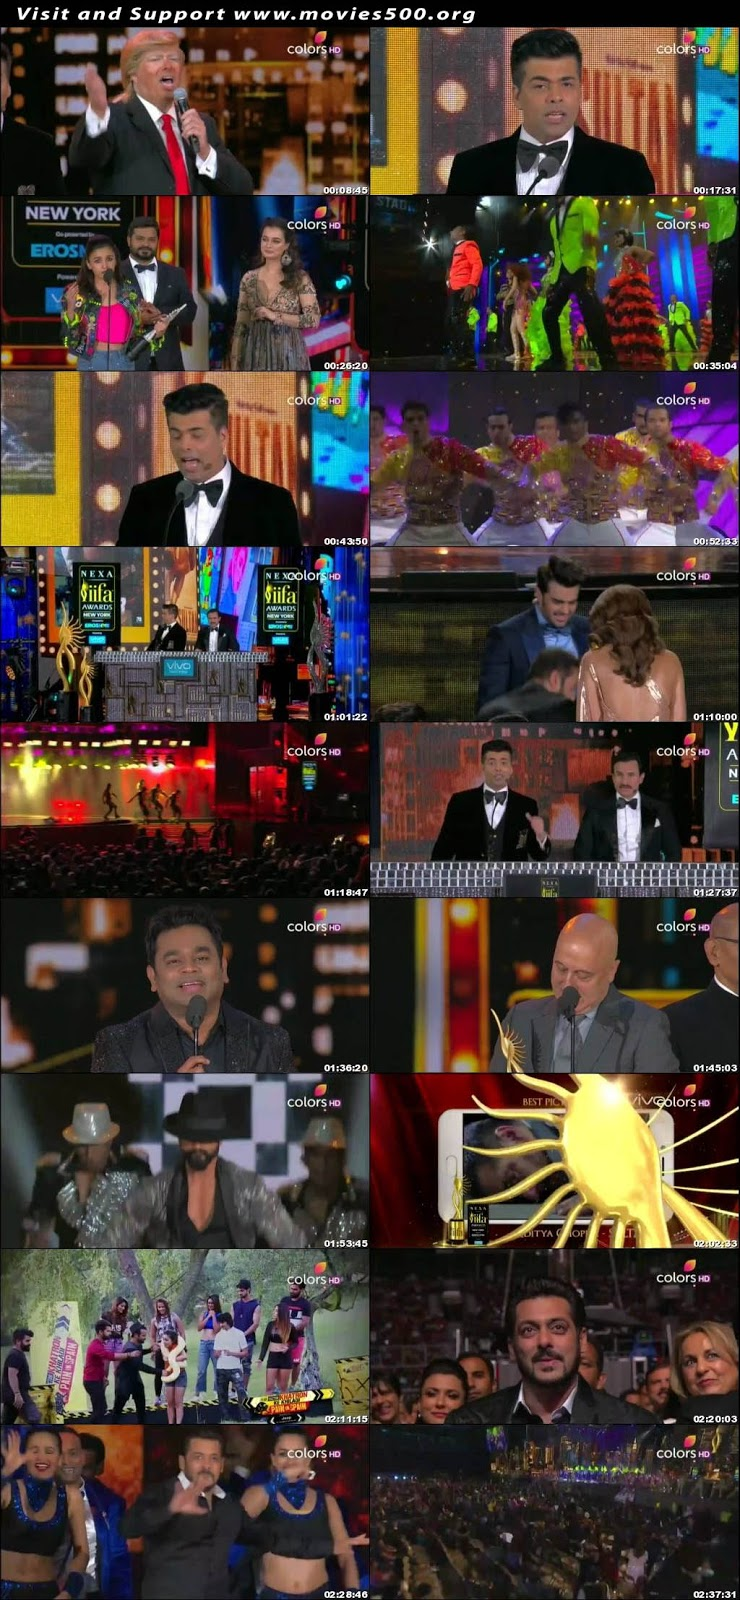 IIFA Awards 18Th 16th July 2017 Hindi Tv Award Show Download at xcharge.net